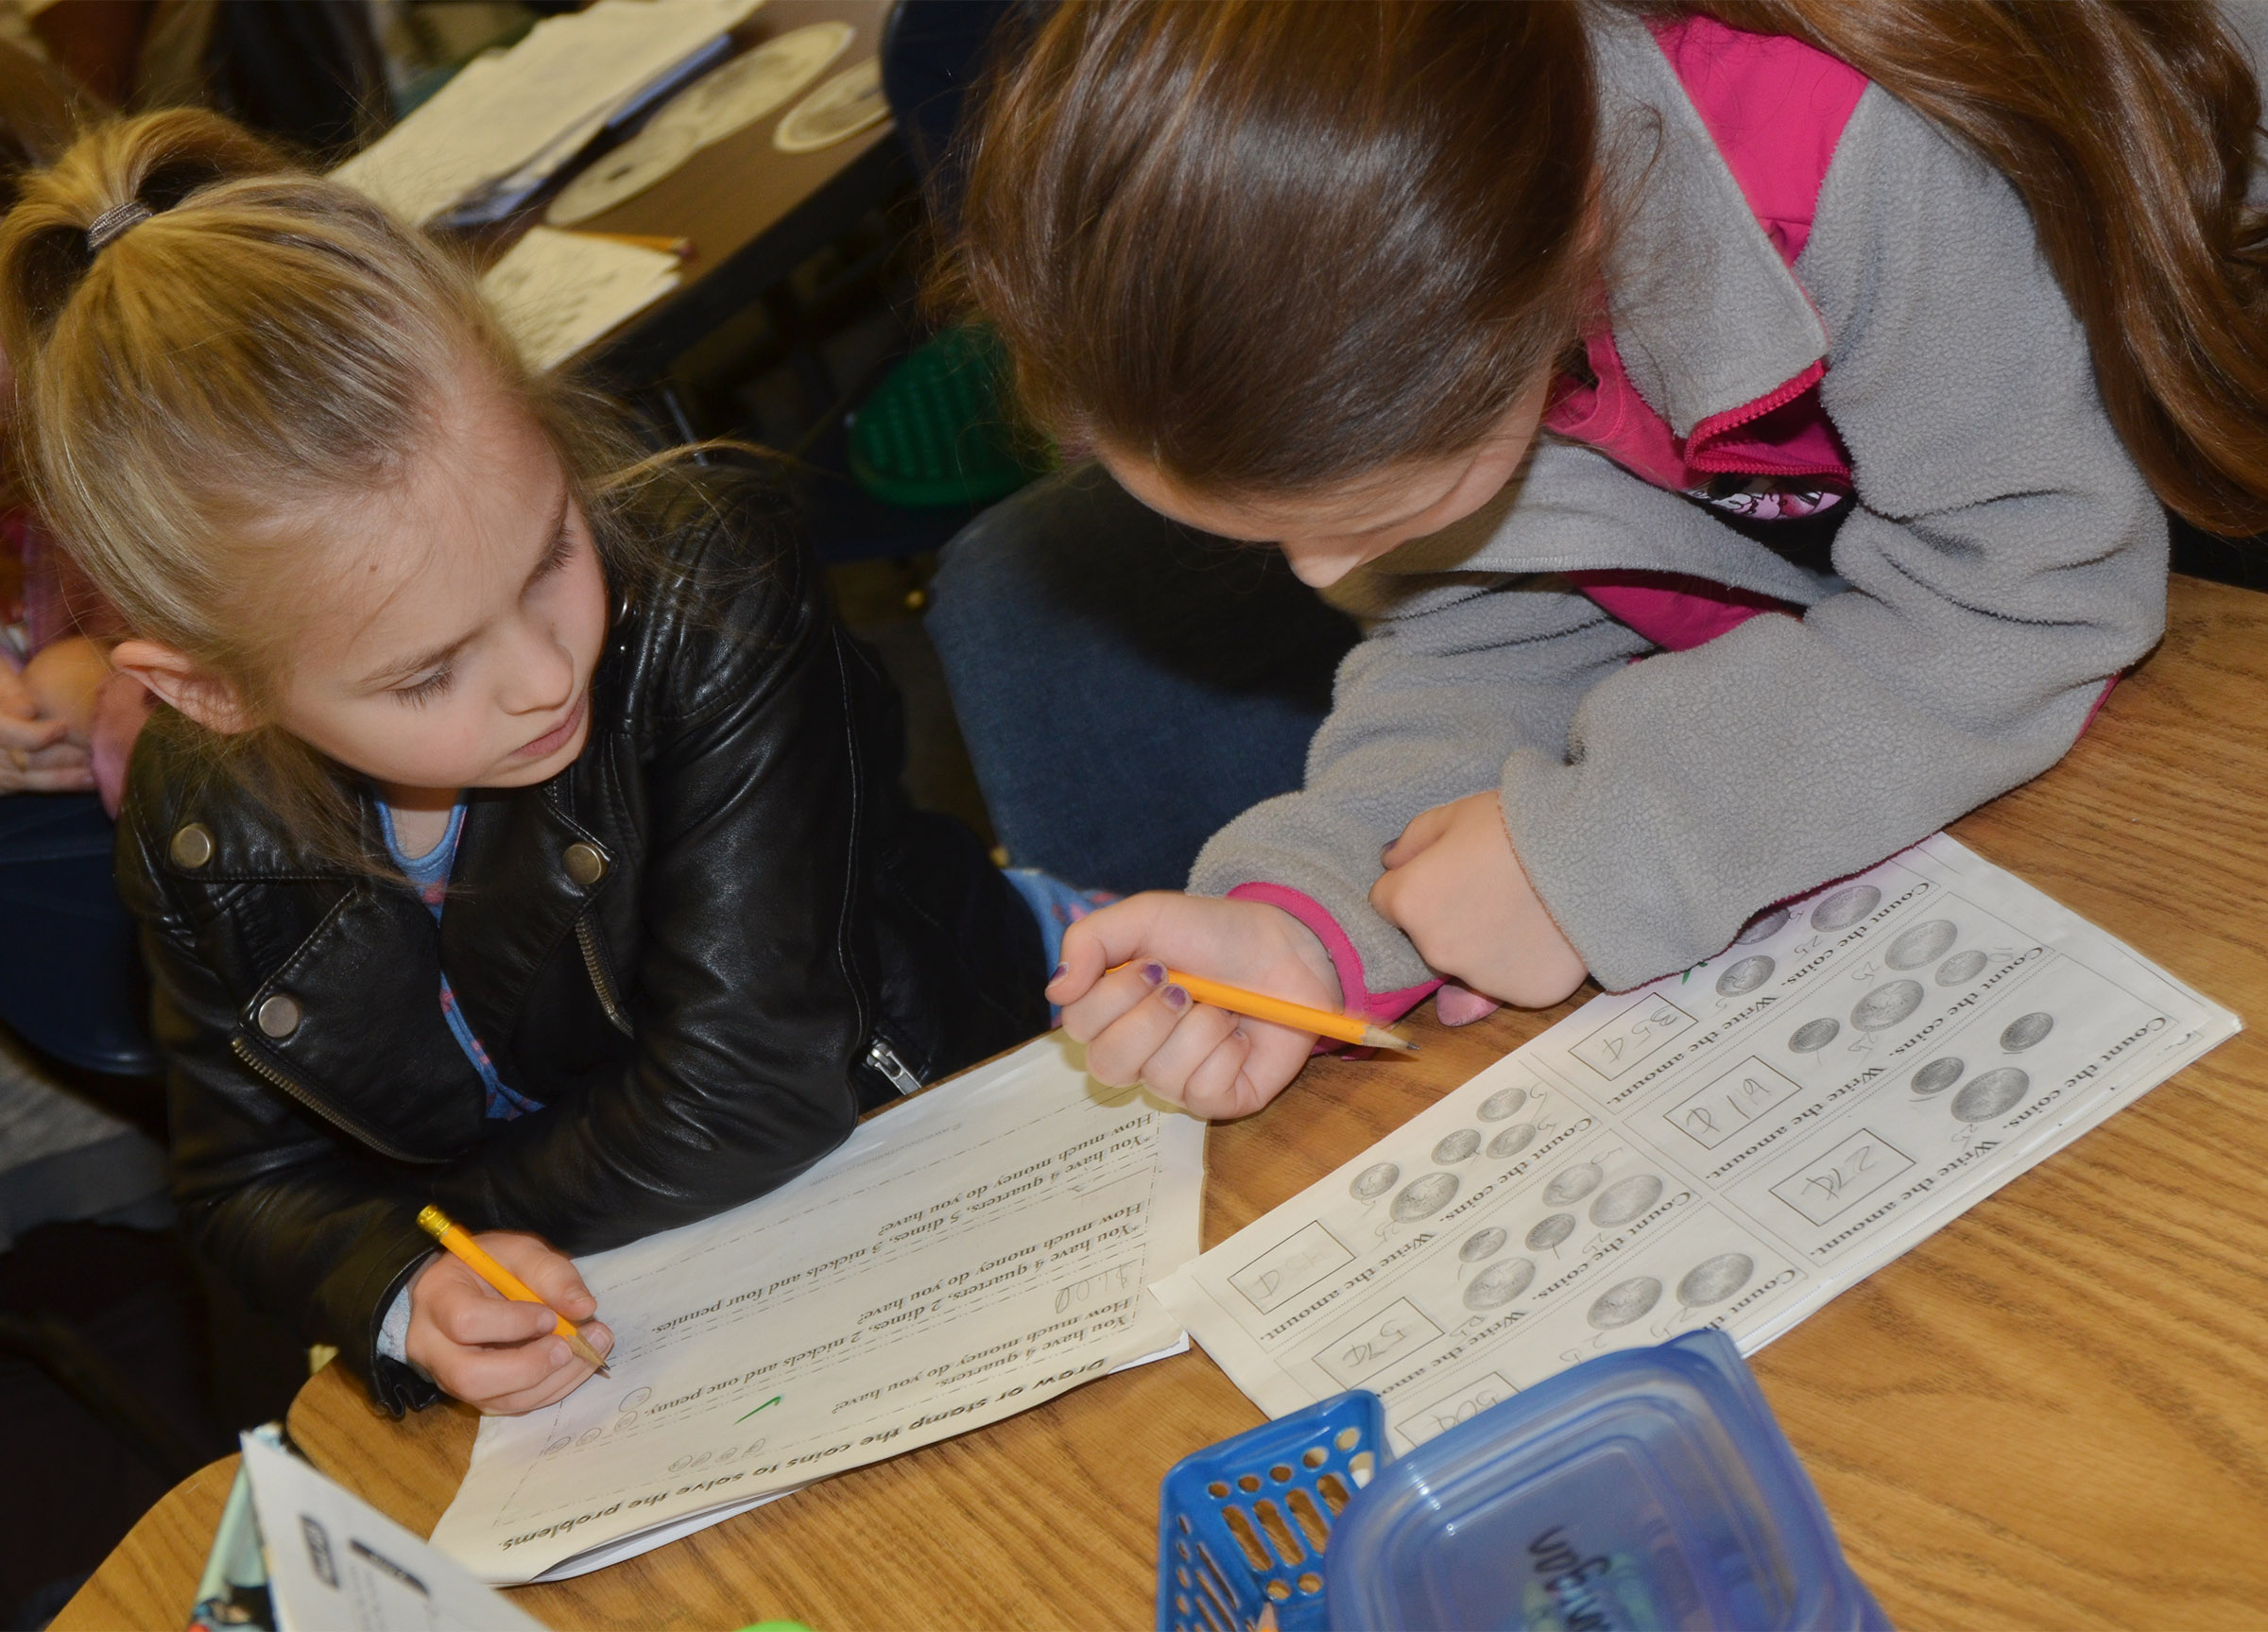 CES second-graders Ava Ellis, at left, and Keely Rakes help each other count money.